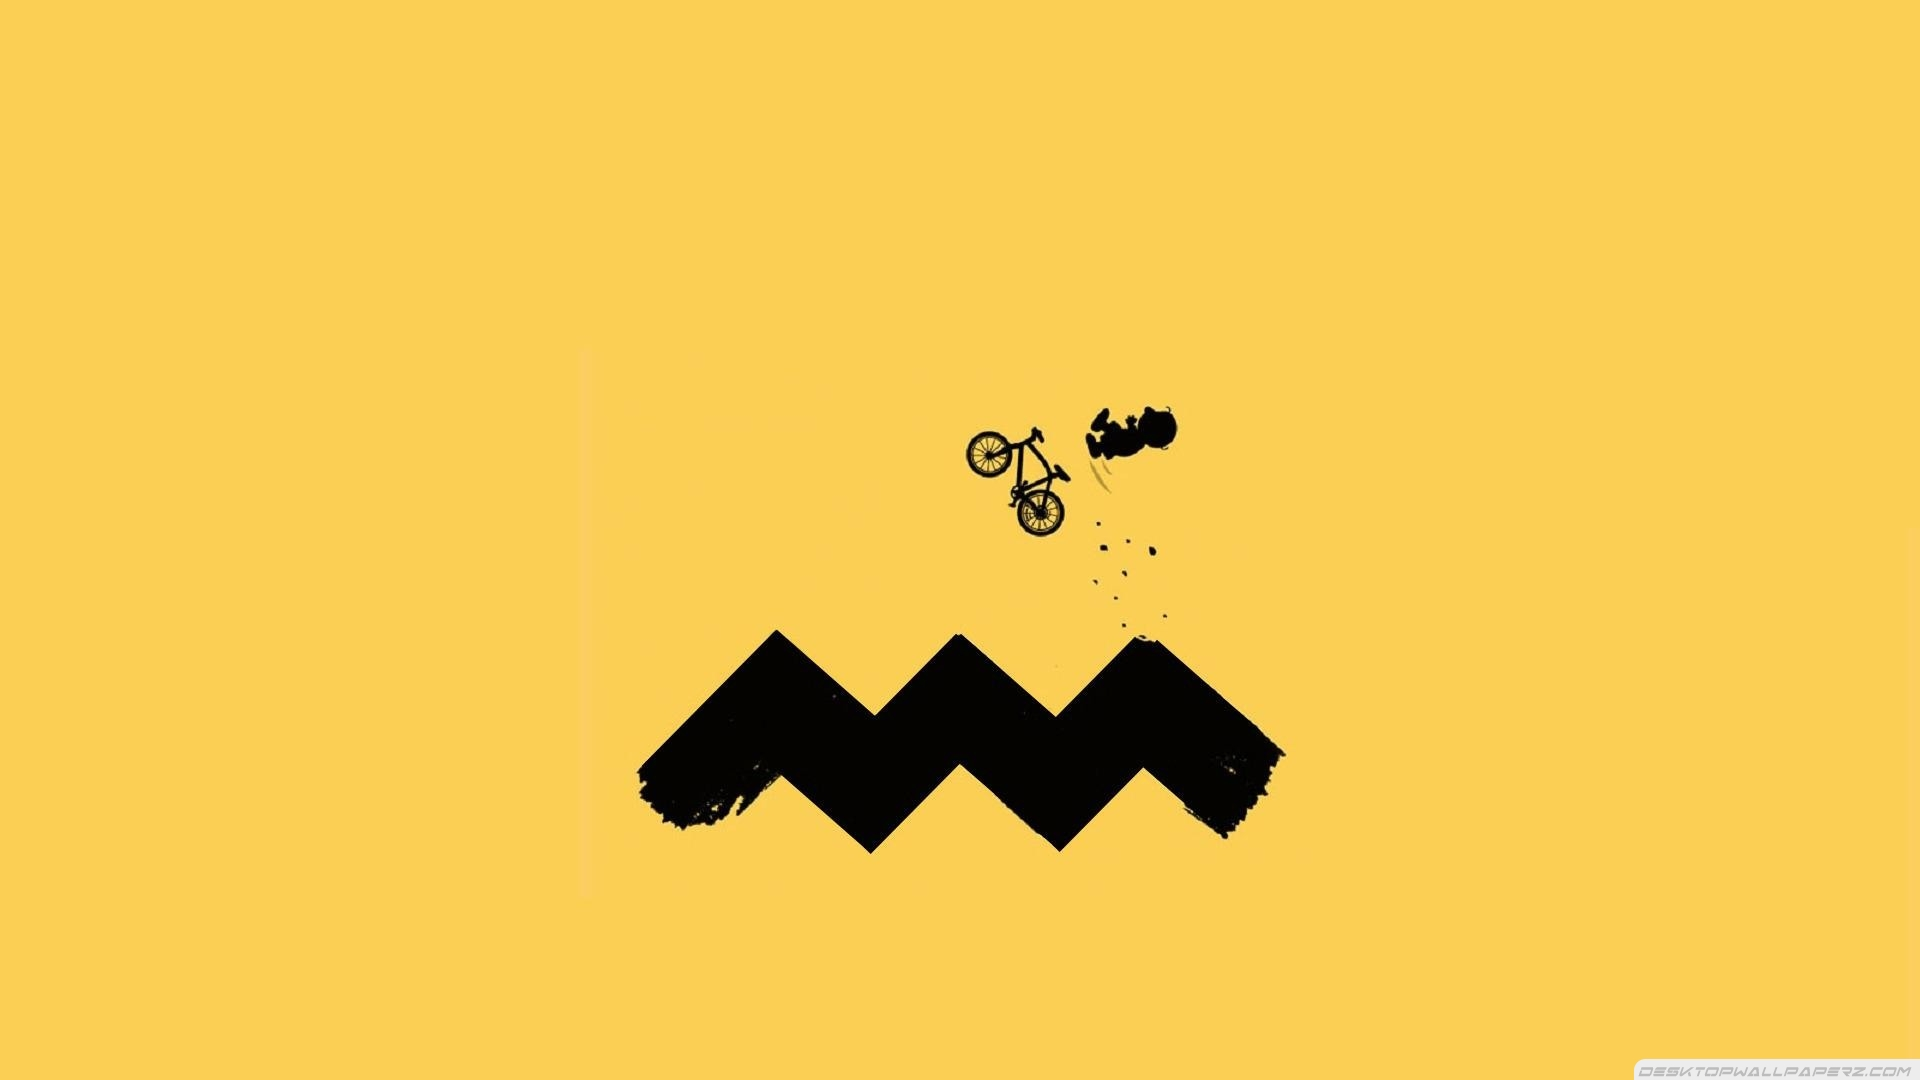 Funny Charlie Brown Cycling 19201080 32476 HD Wallpaper 1920x1080